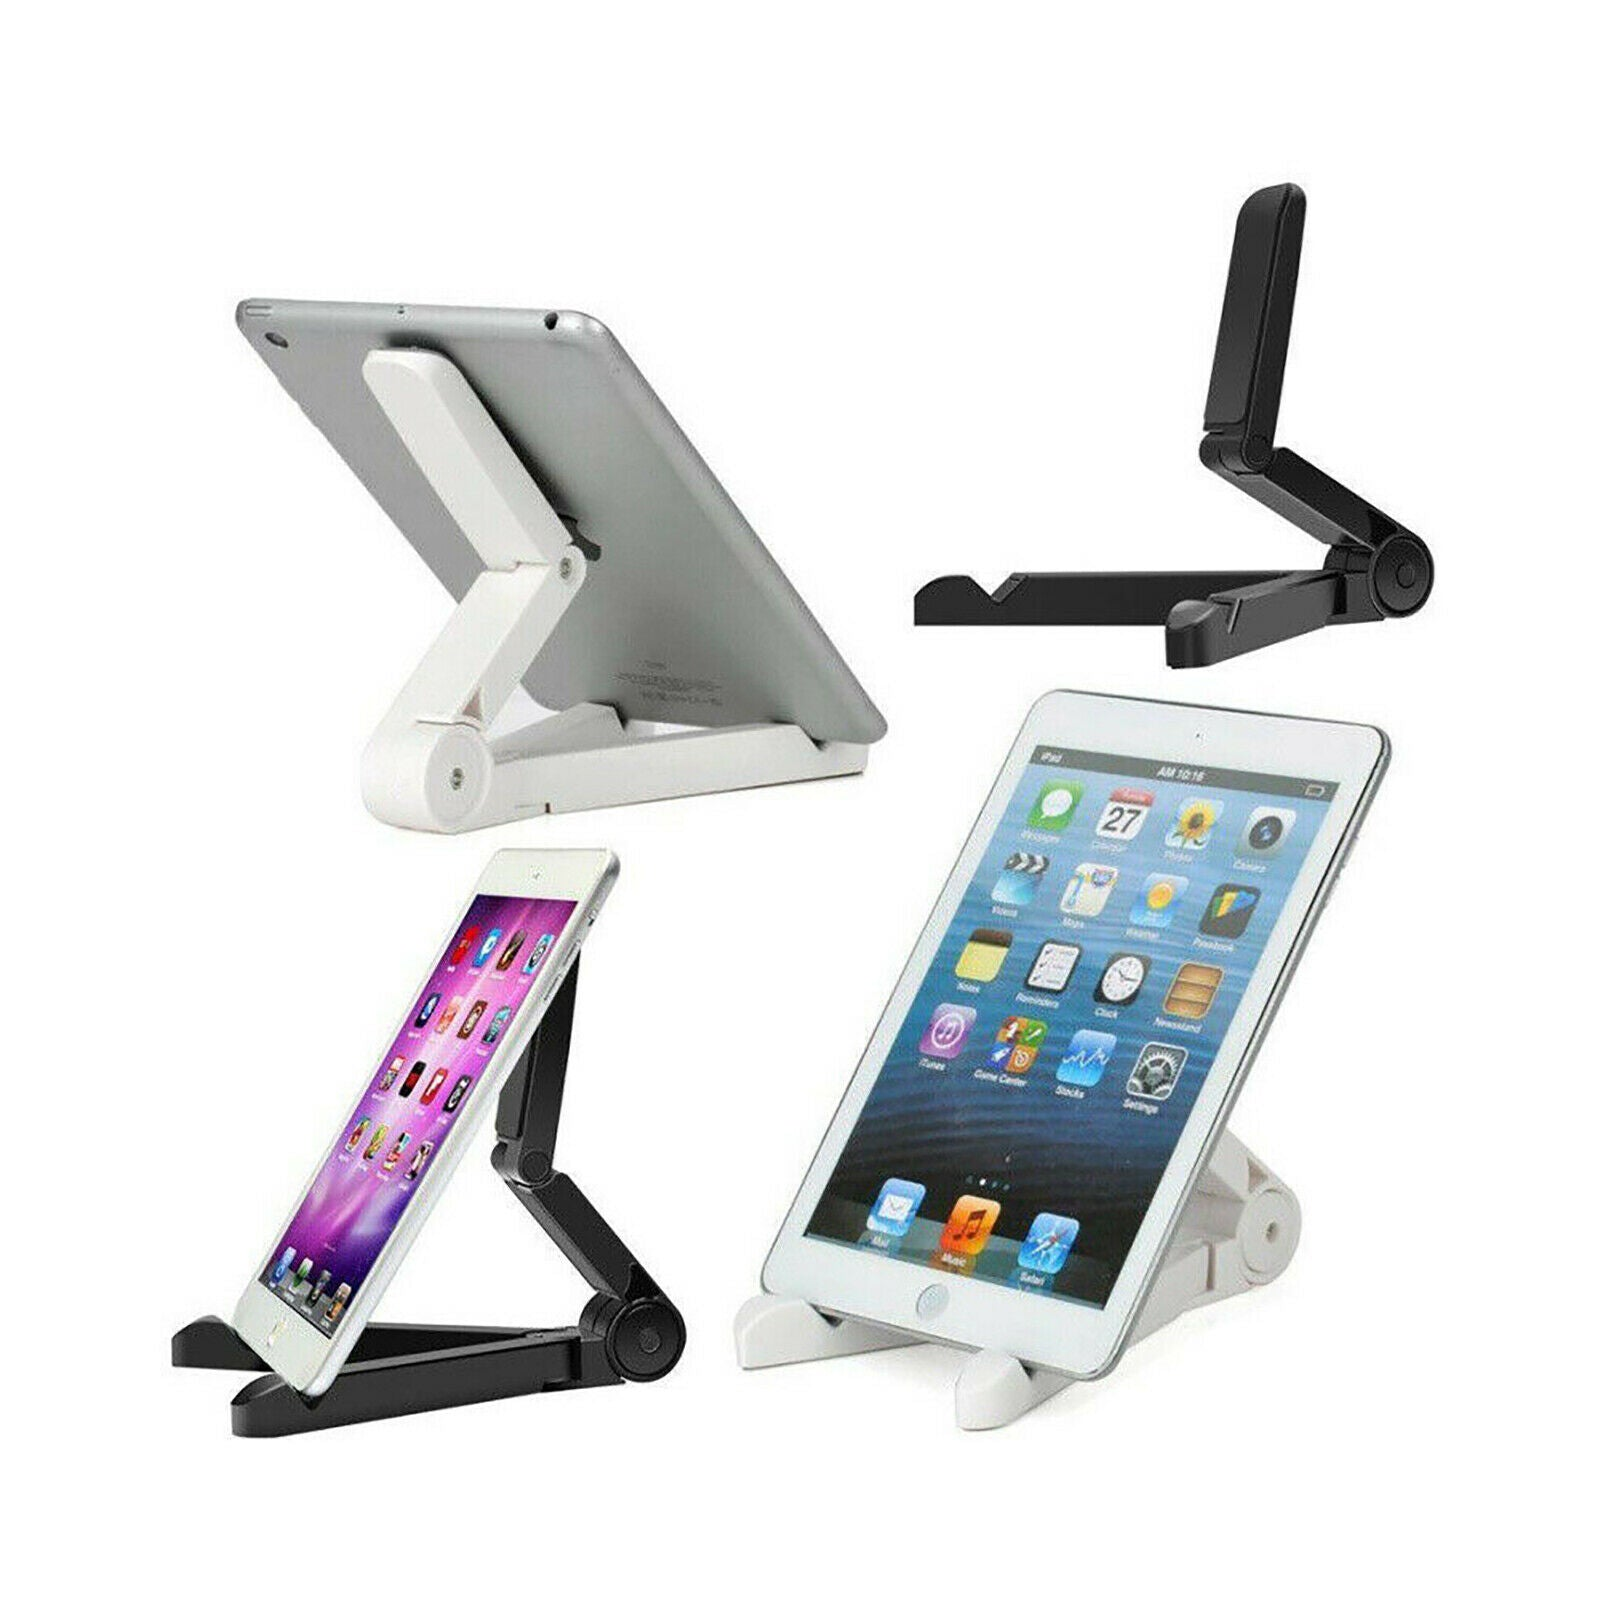 Folding Adjustable Bracket Stand Holder for iPad iPhone Android Tablet - White